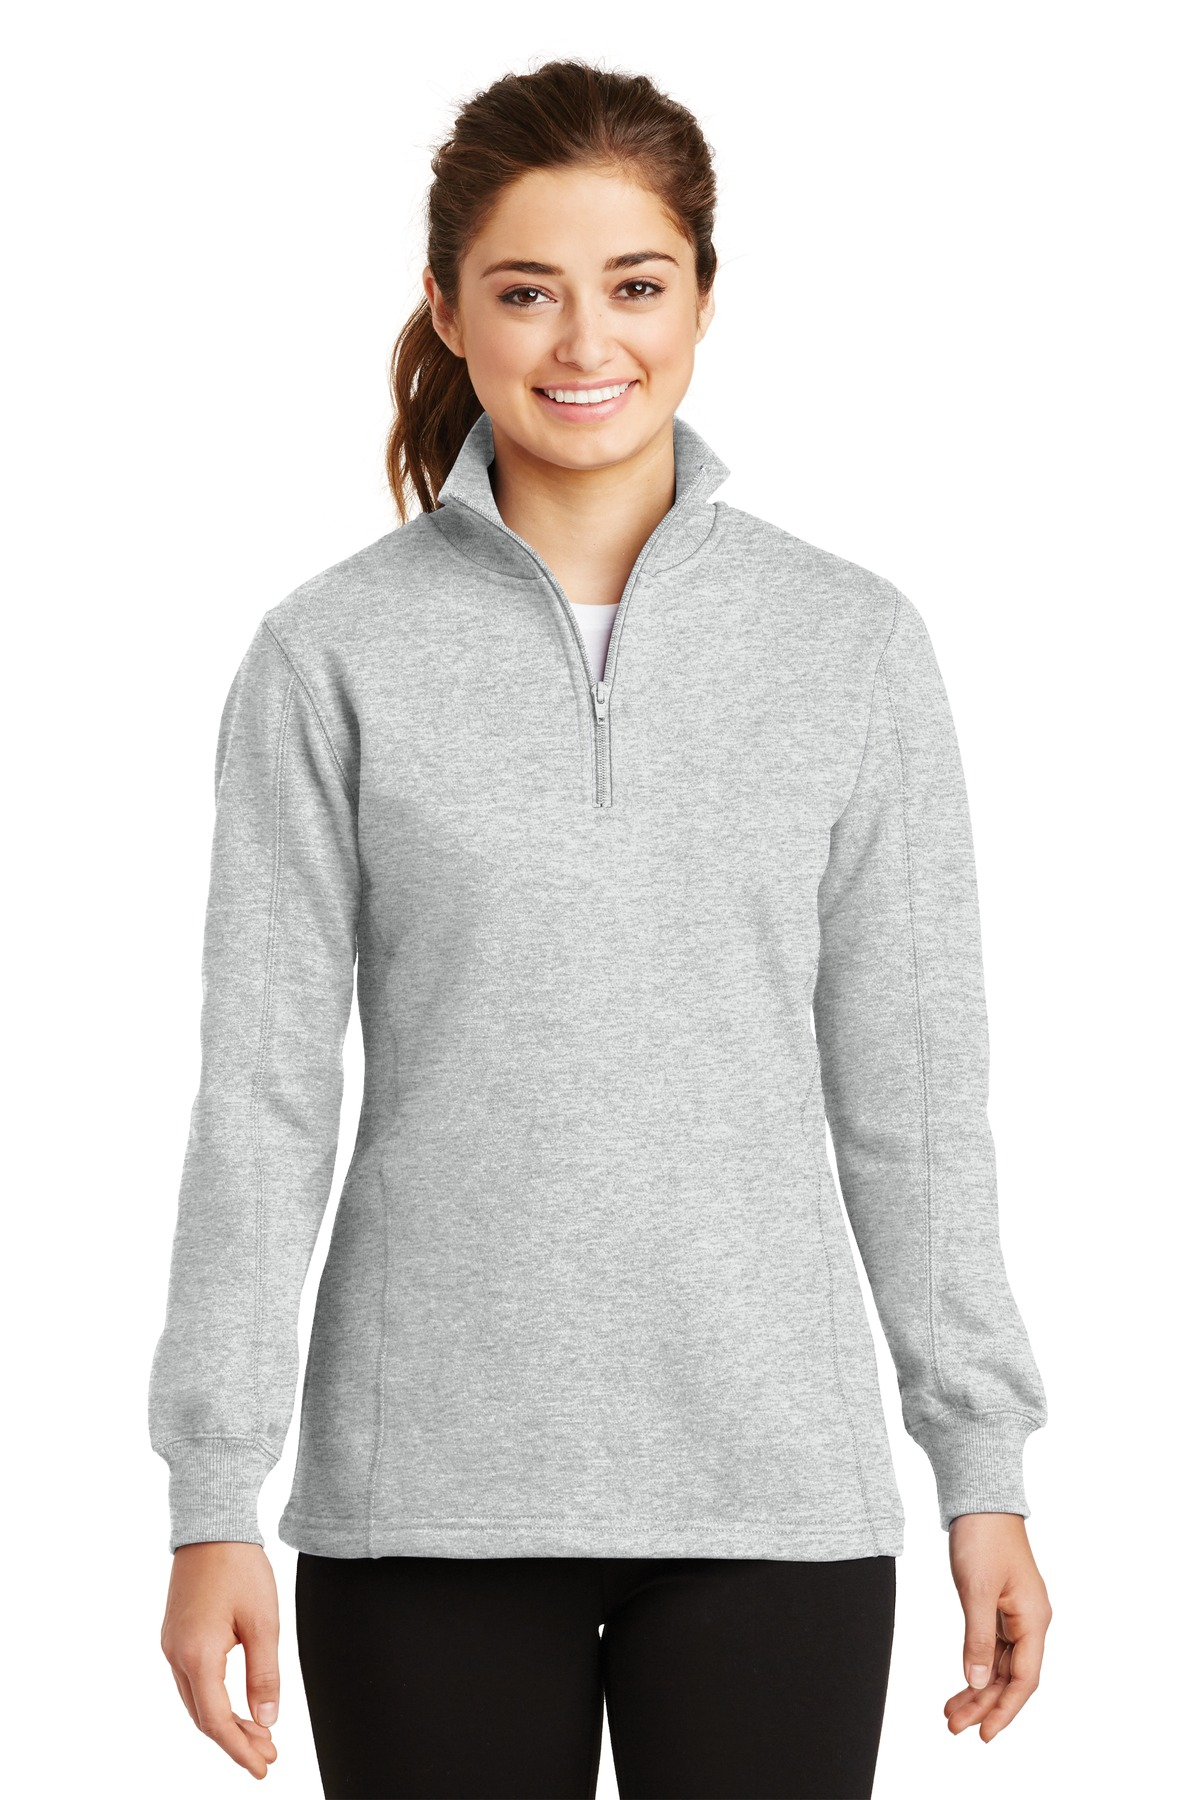 Sport-Tek ®  Ladies 1/4-Zip Sweatshirt. LST253 - Athletic Heather